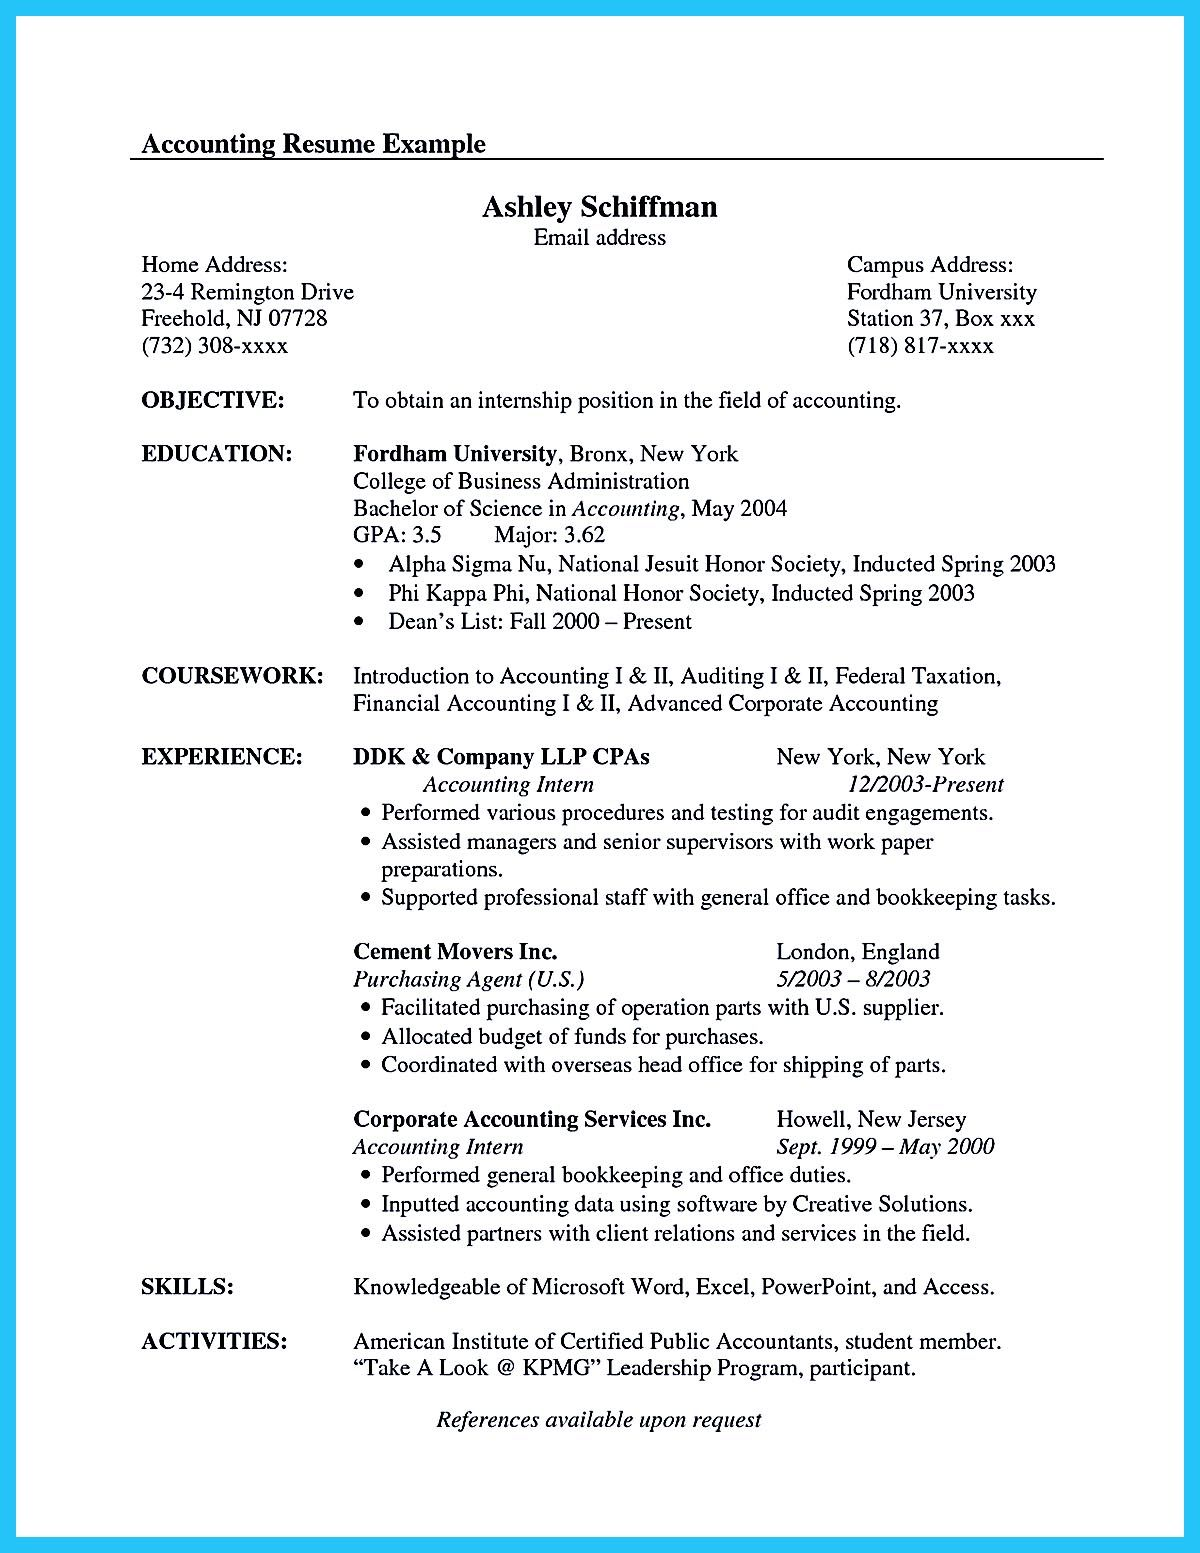 resume for accounting internship with no experience